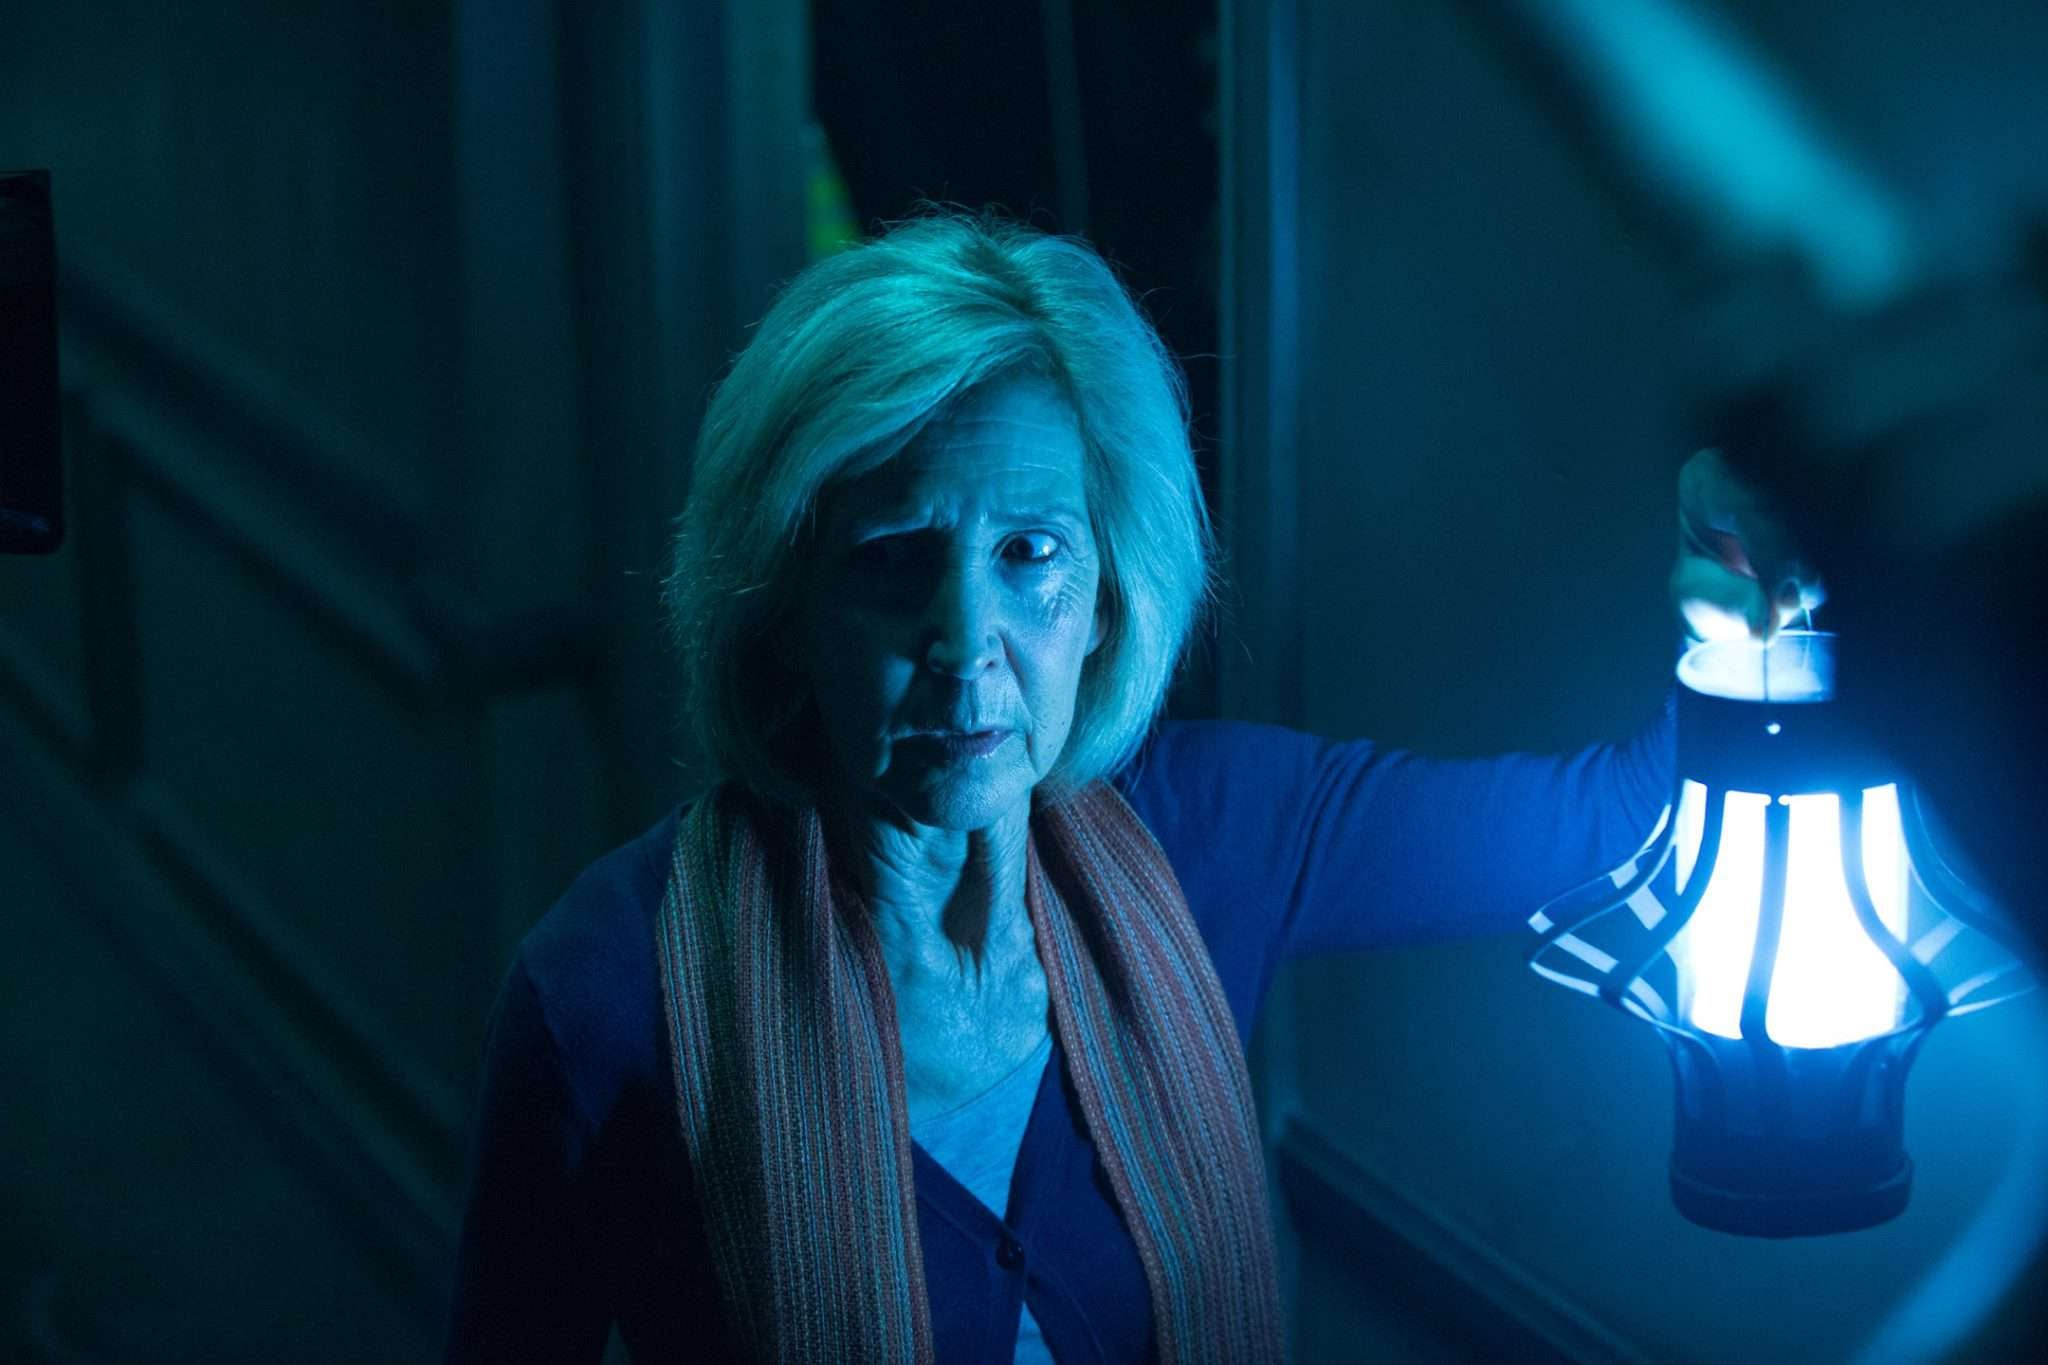 Halloween Horror Nights Takes You Beyond the Further With New 'Insidious' Maze